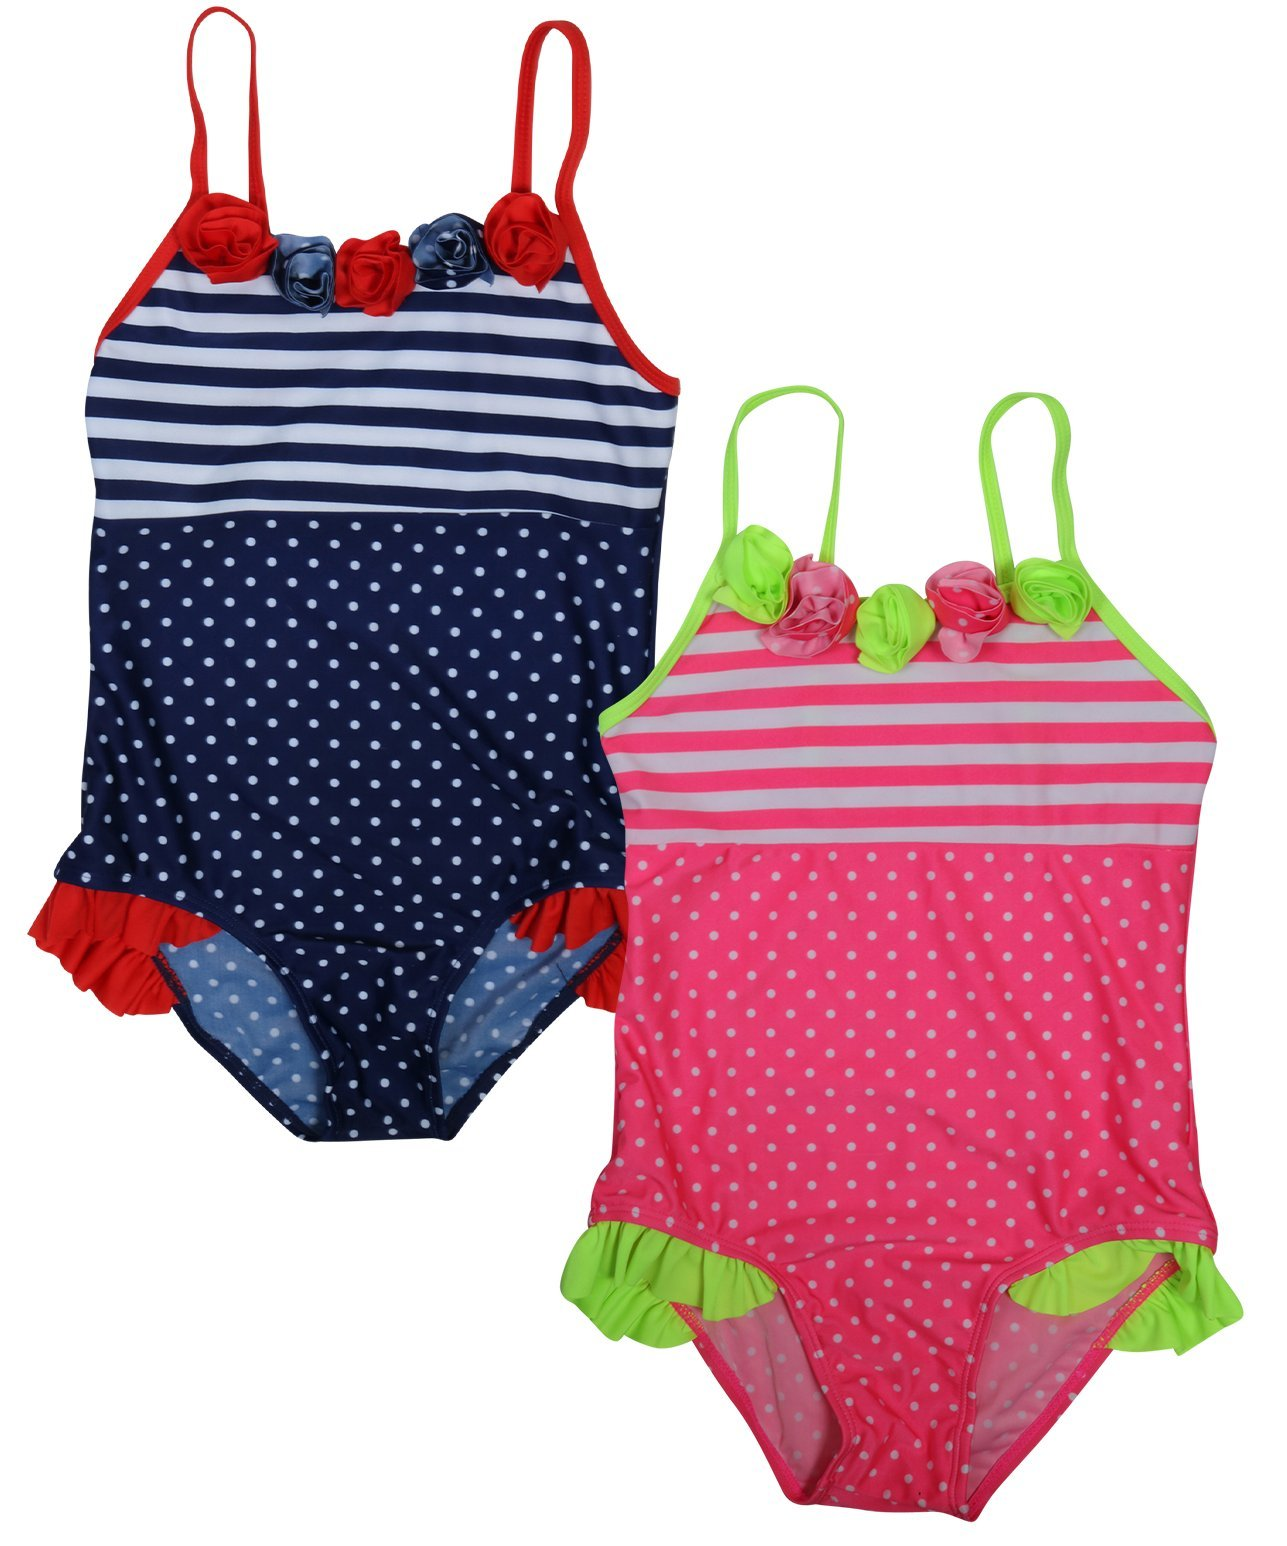 Real Love Girls' 2-Pack One Piece Swimsuit (Little Girls/Big Girls), Polka Dots, Size 7-8'